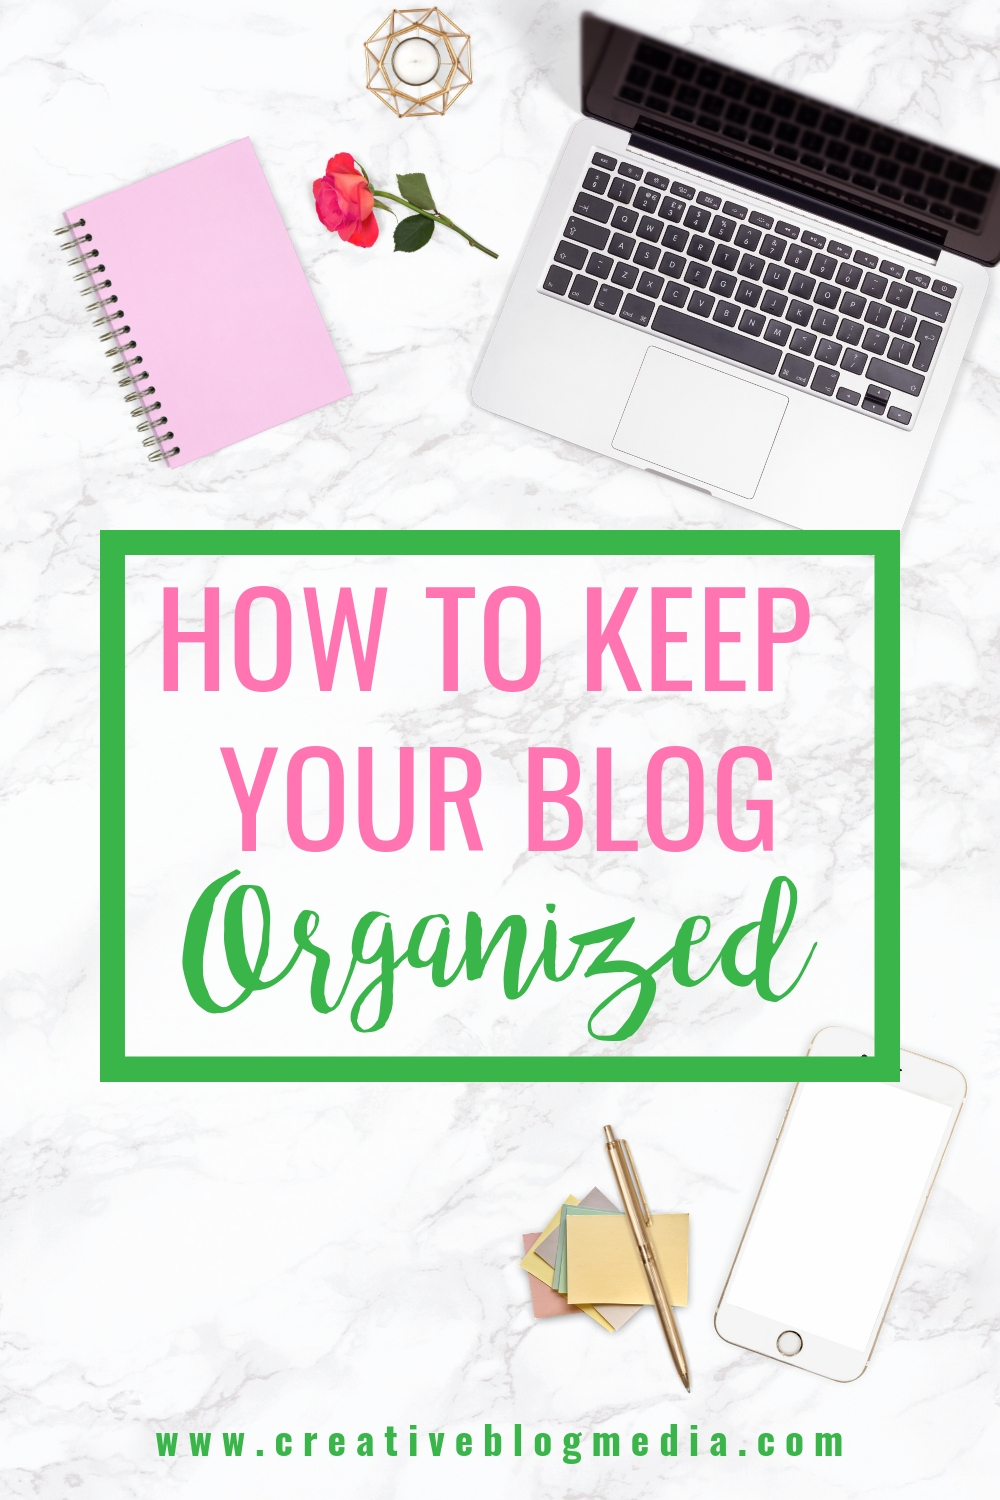 Keep your blogging business on task and on target with these helpful Tips To Keep Your Blog Organized. #bloggingtips #productivity